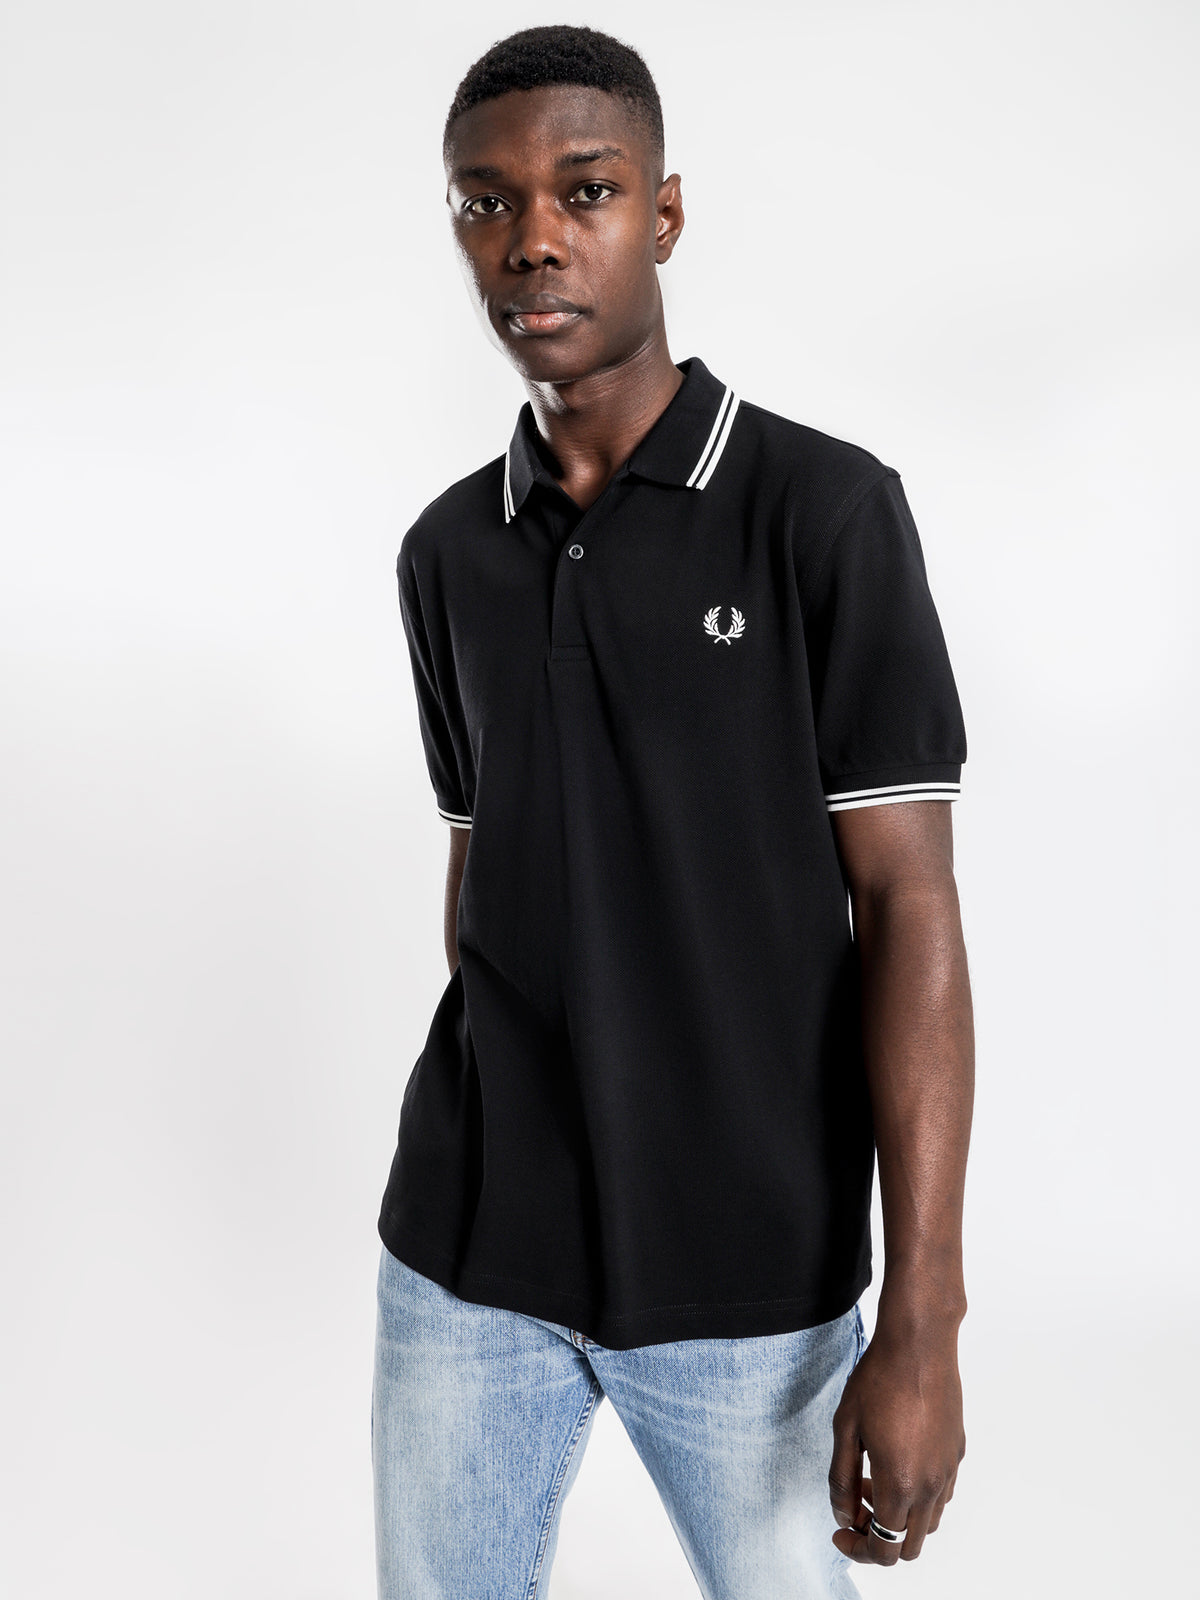 Twin Tipped Polo T-Shirt in Black & White